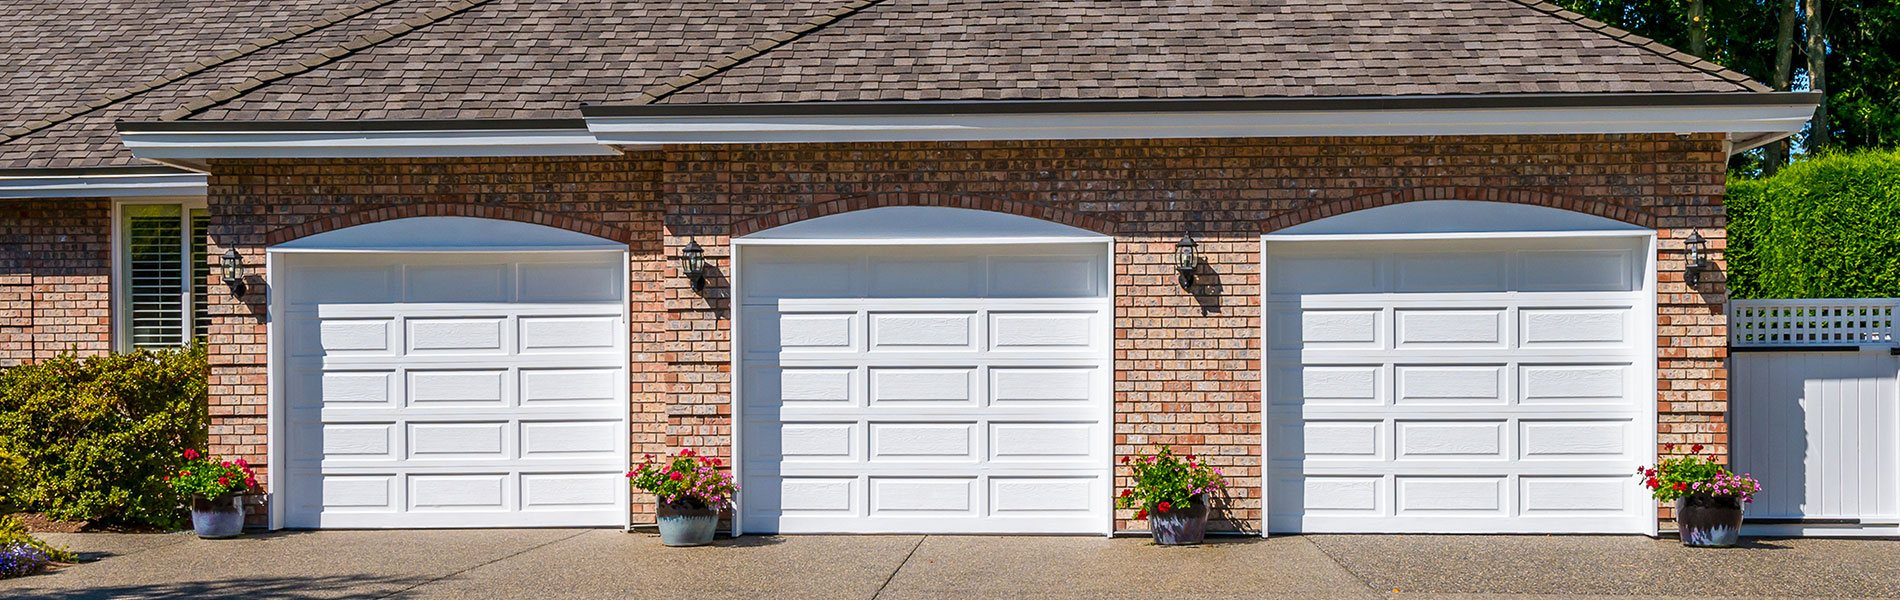 Galaxy Garage Door Repair Service, Towson, MD 410-881-2112